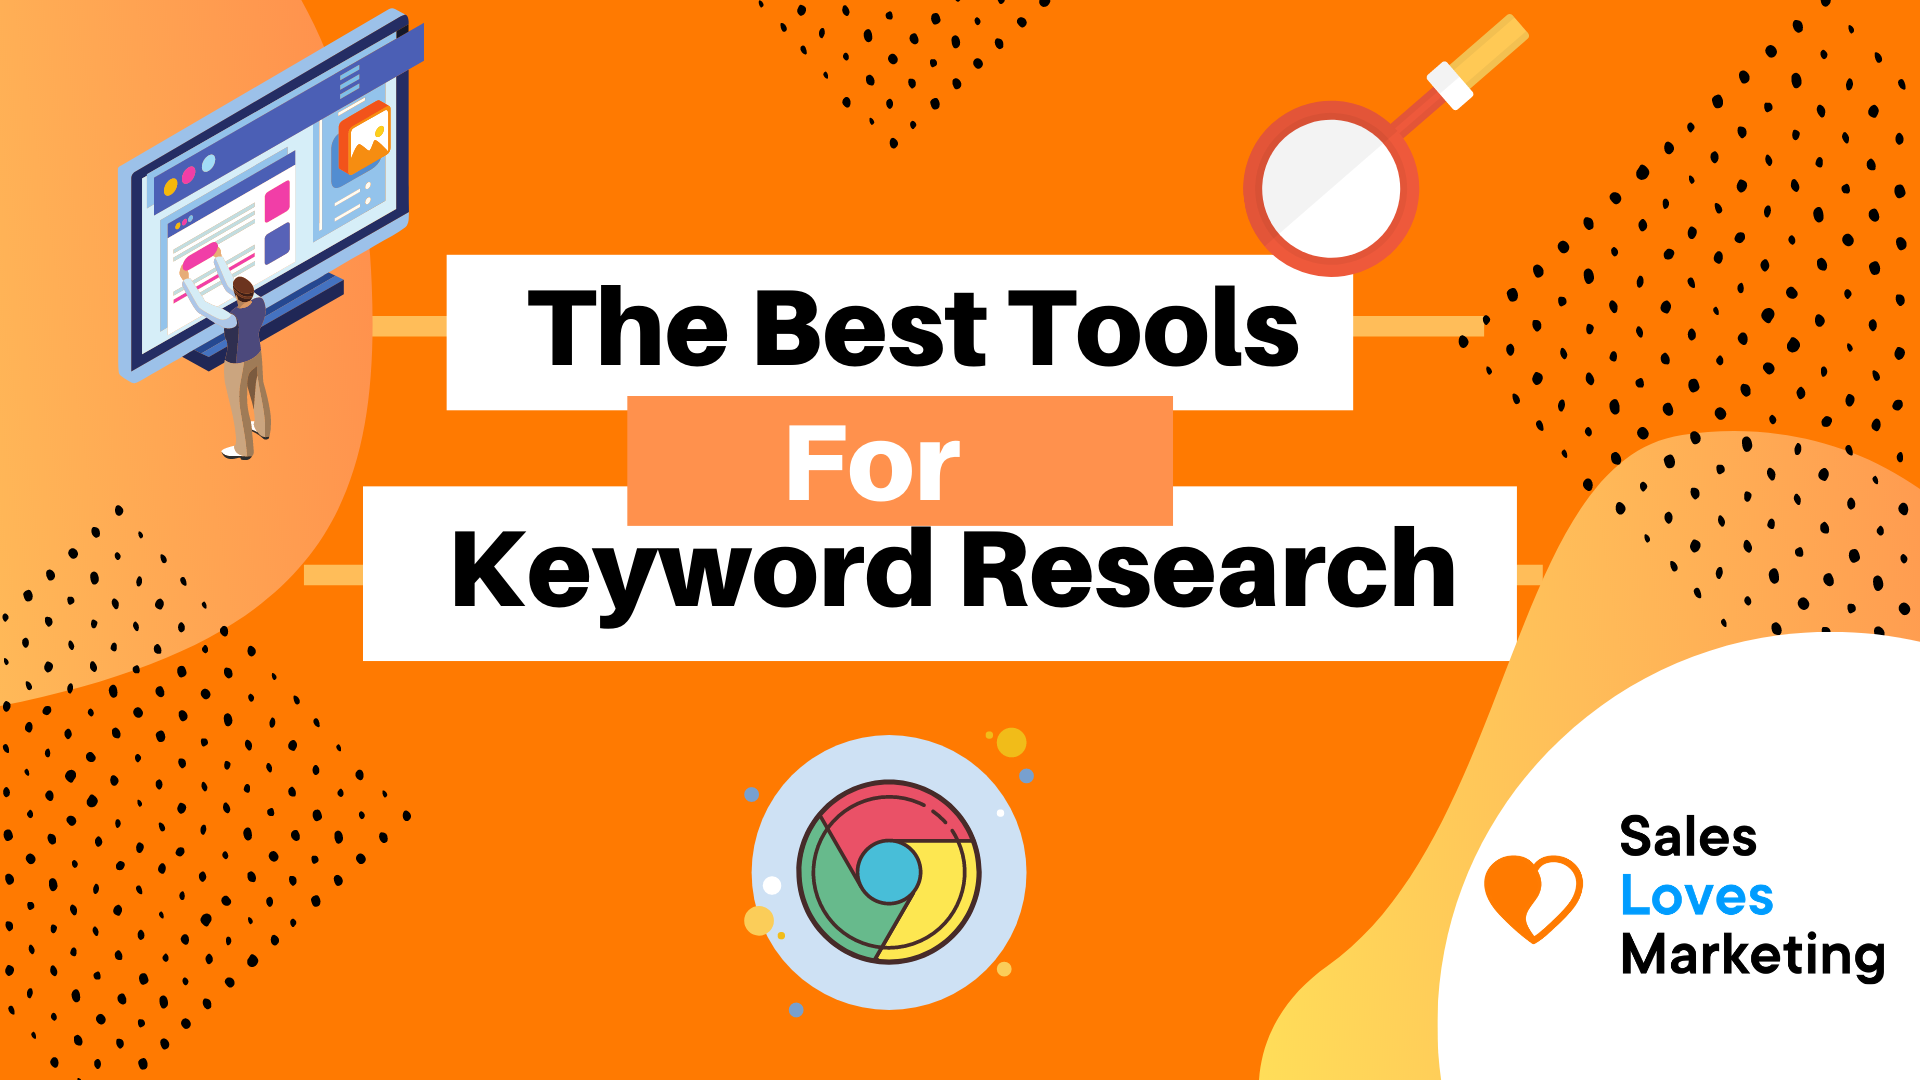 The best tools for keyword research to start ranking higher in google